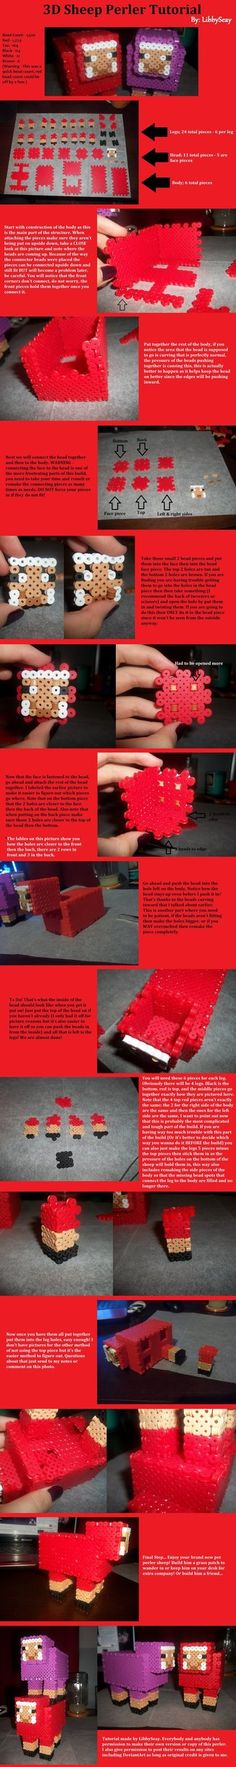 3D Sheep Perler Tutorial by Libbyseay